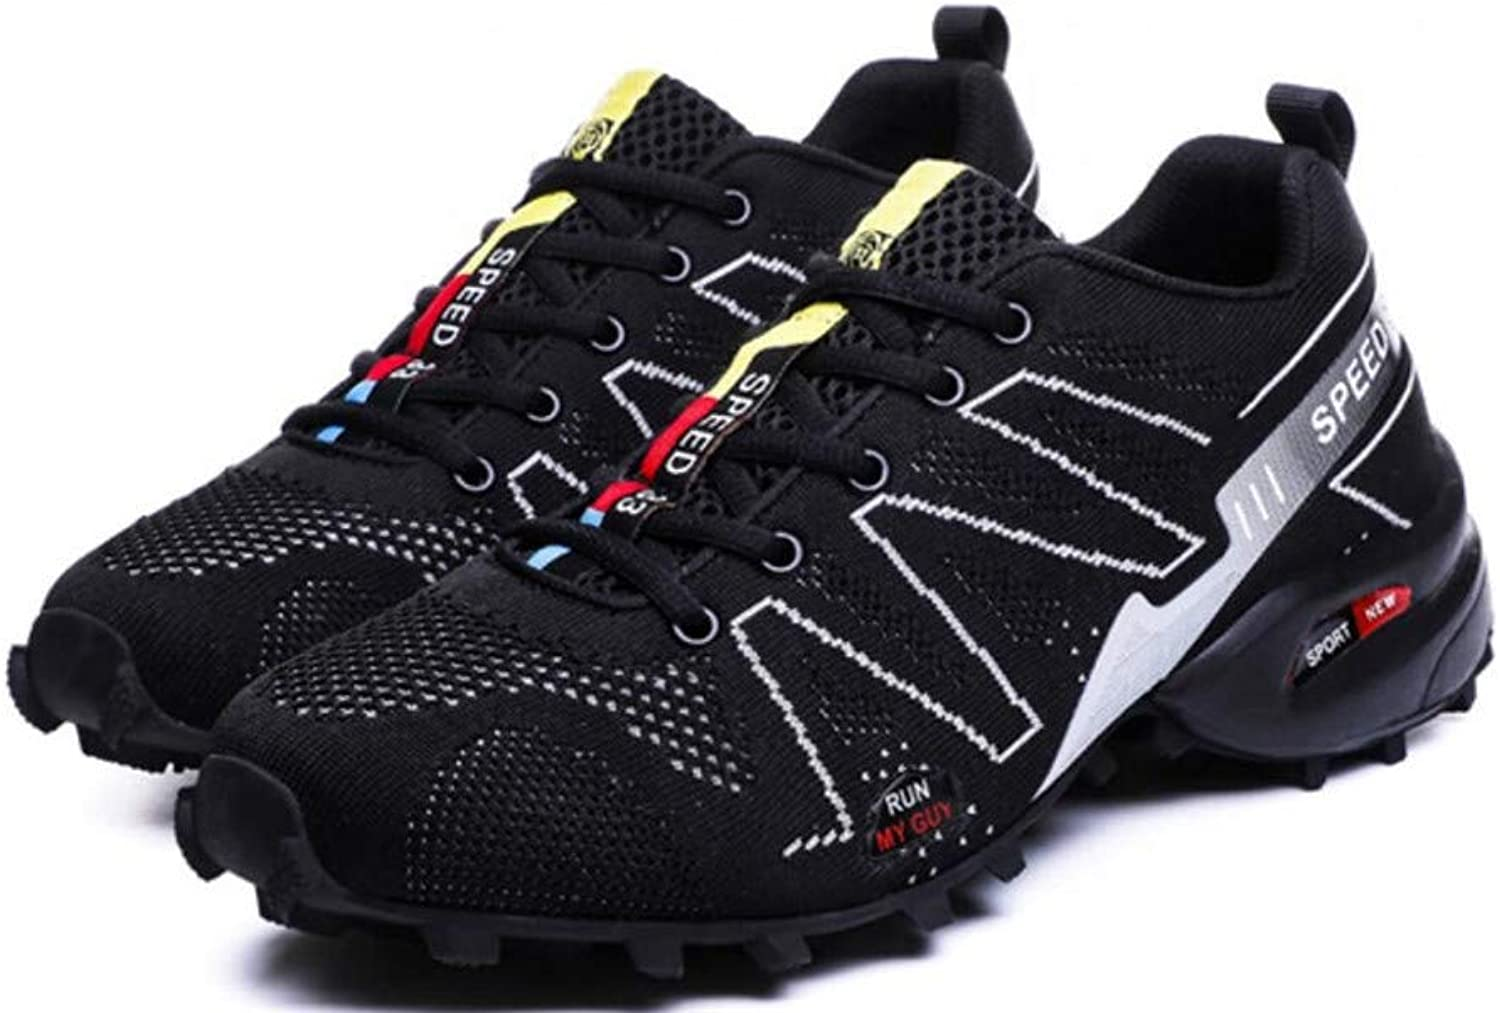 LUCKY-U Men Hiking shoes,Shockproof Non-Slip Outdoor Breathable Low Snow Leather Hiking Walking shoes